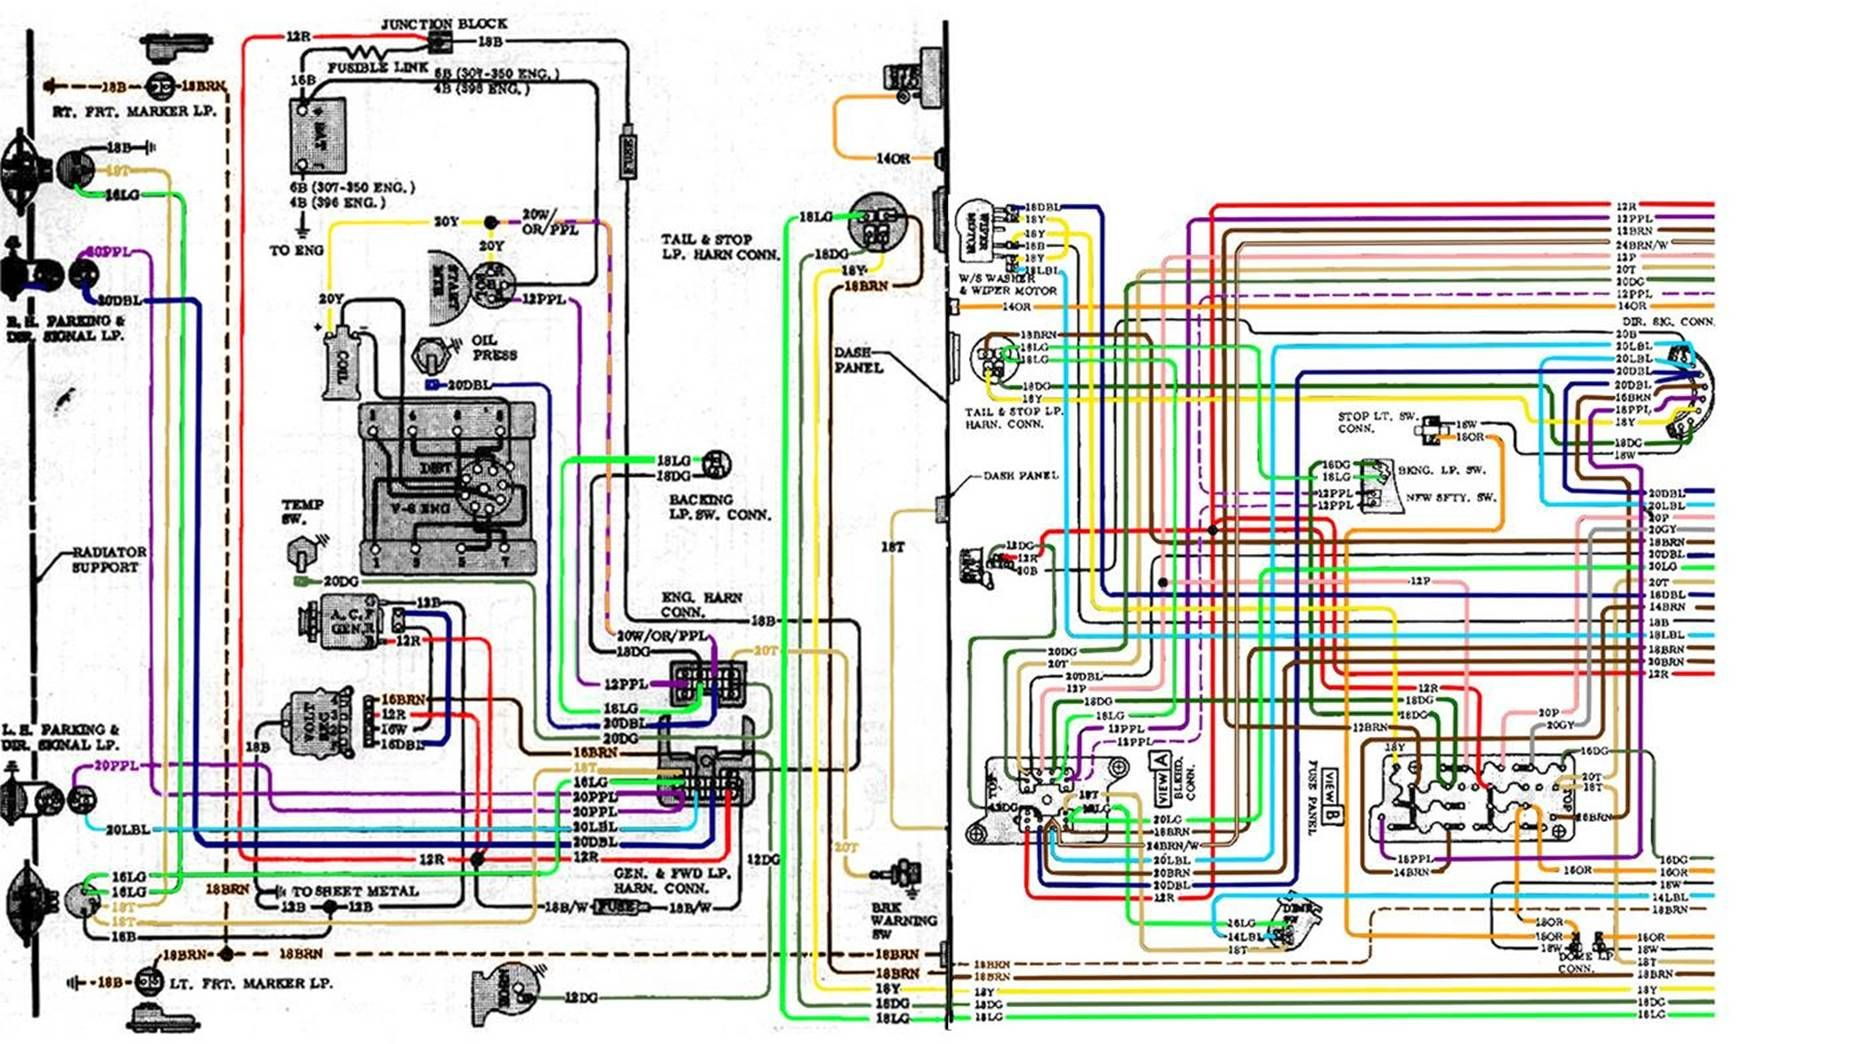 67-72 Chevy Wiring Diagram